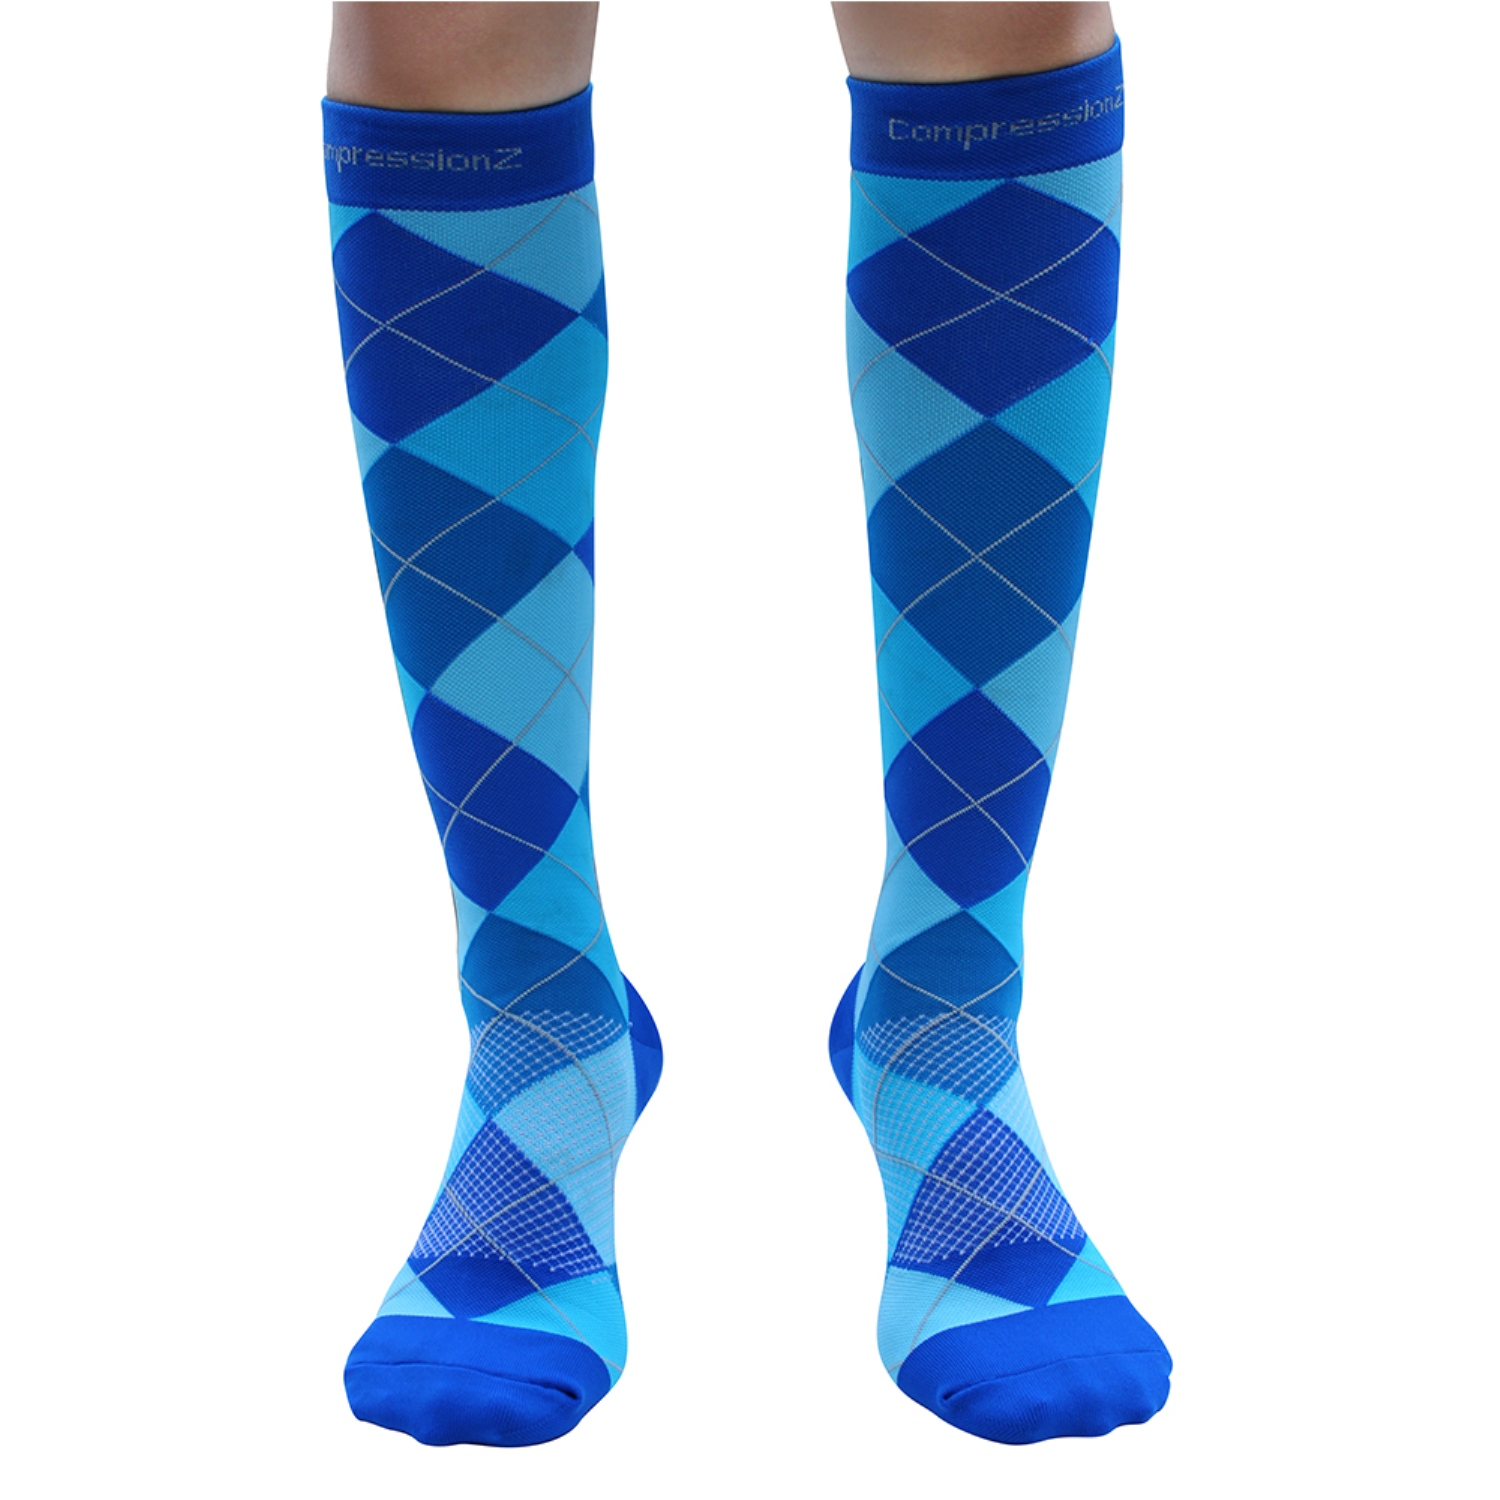 CompressionZ Argyle Blue 30-40mmHg Compression Socks 1 Pair, Small - Comfortable